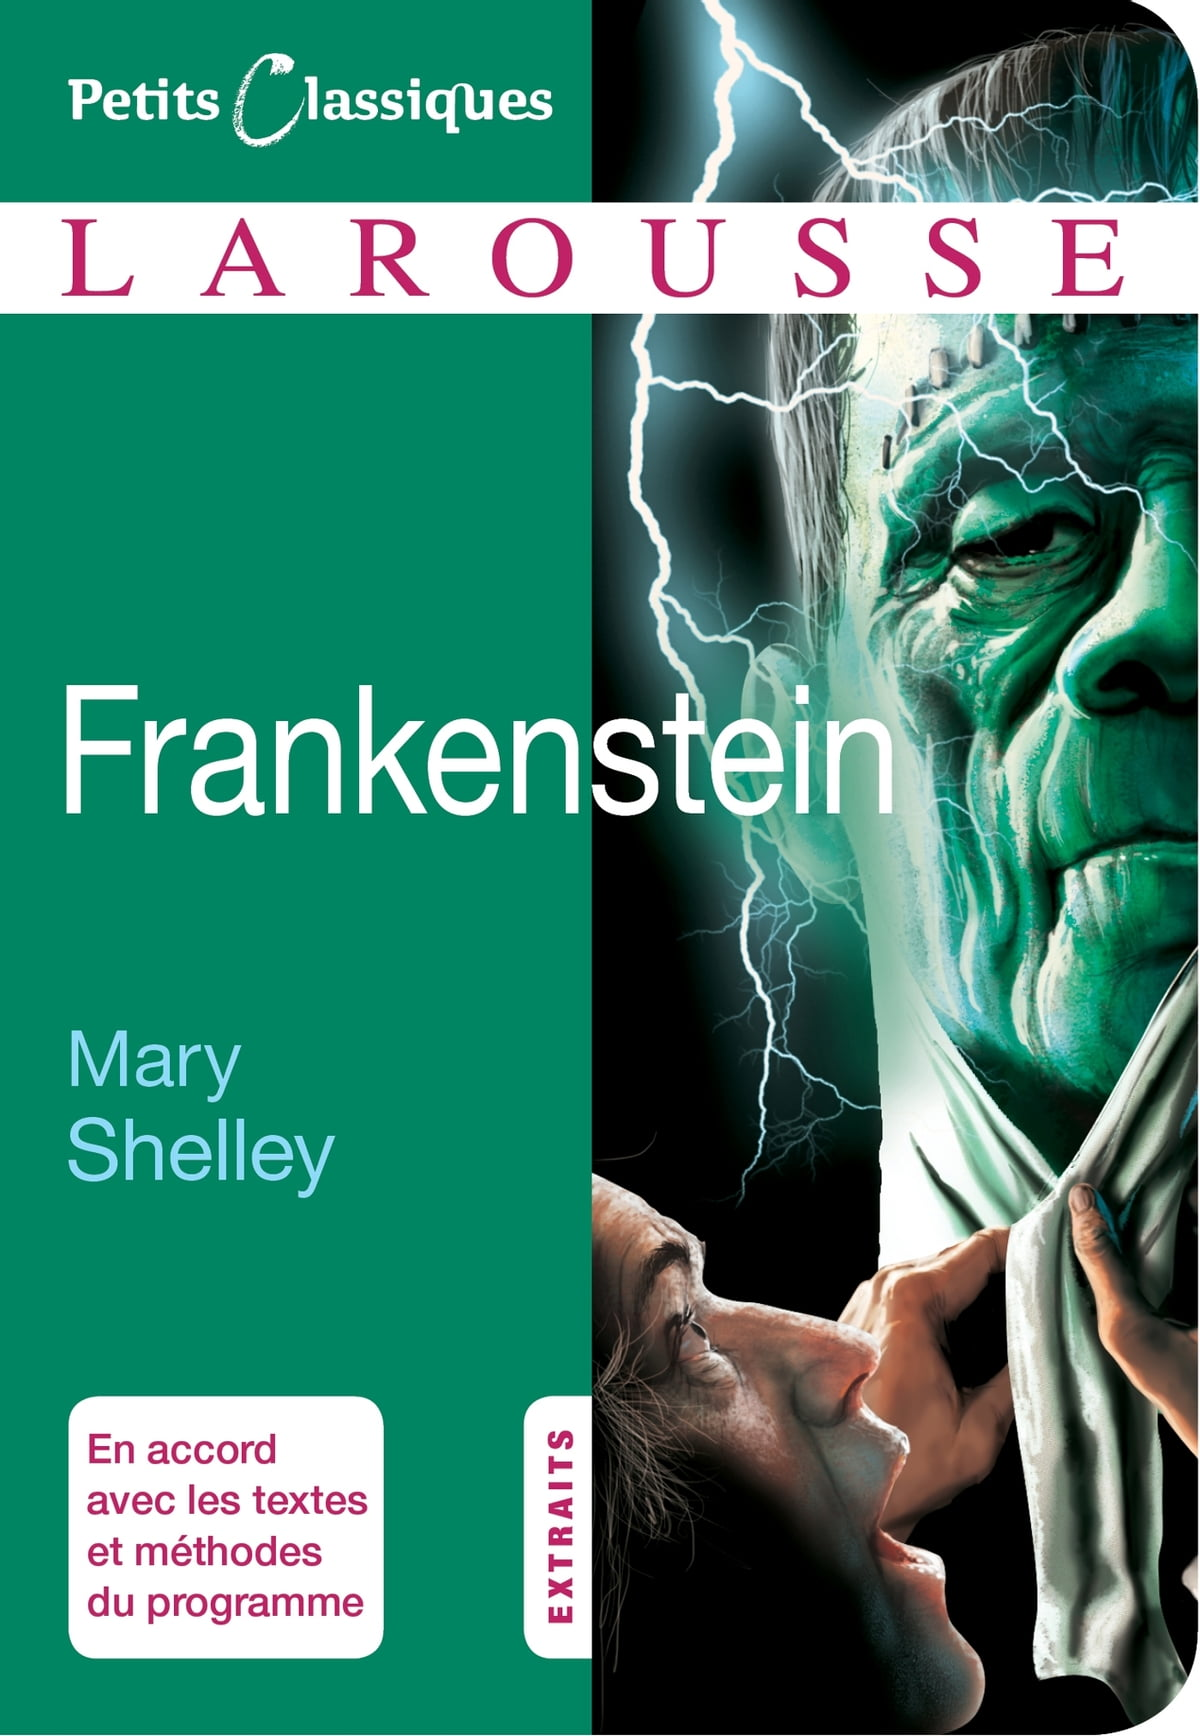 thesis of frankenstein by mary shelley This is a list of works by mary shelley (30 august 1797 - 1 february 1851), the british novelist, short story writer, dramatist, essayist, biographer, and travel writer, best known for her gothic novel frankenstein: or, the modern prometheus (1818.